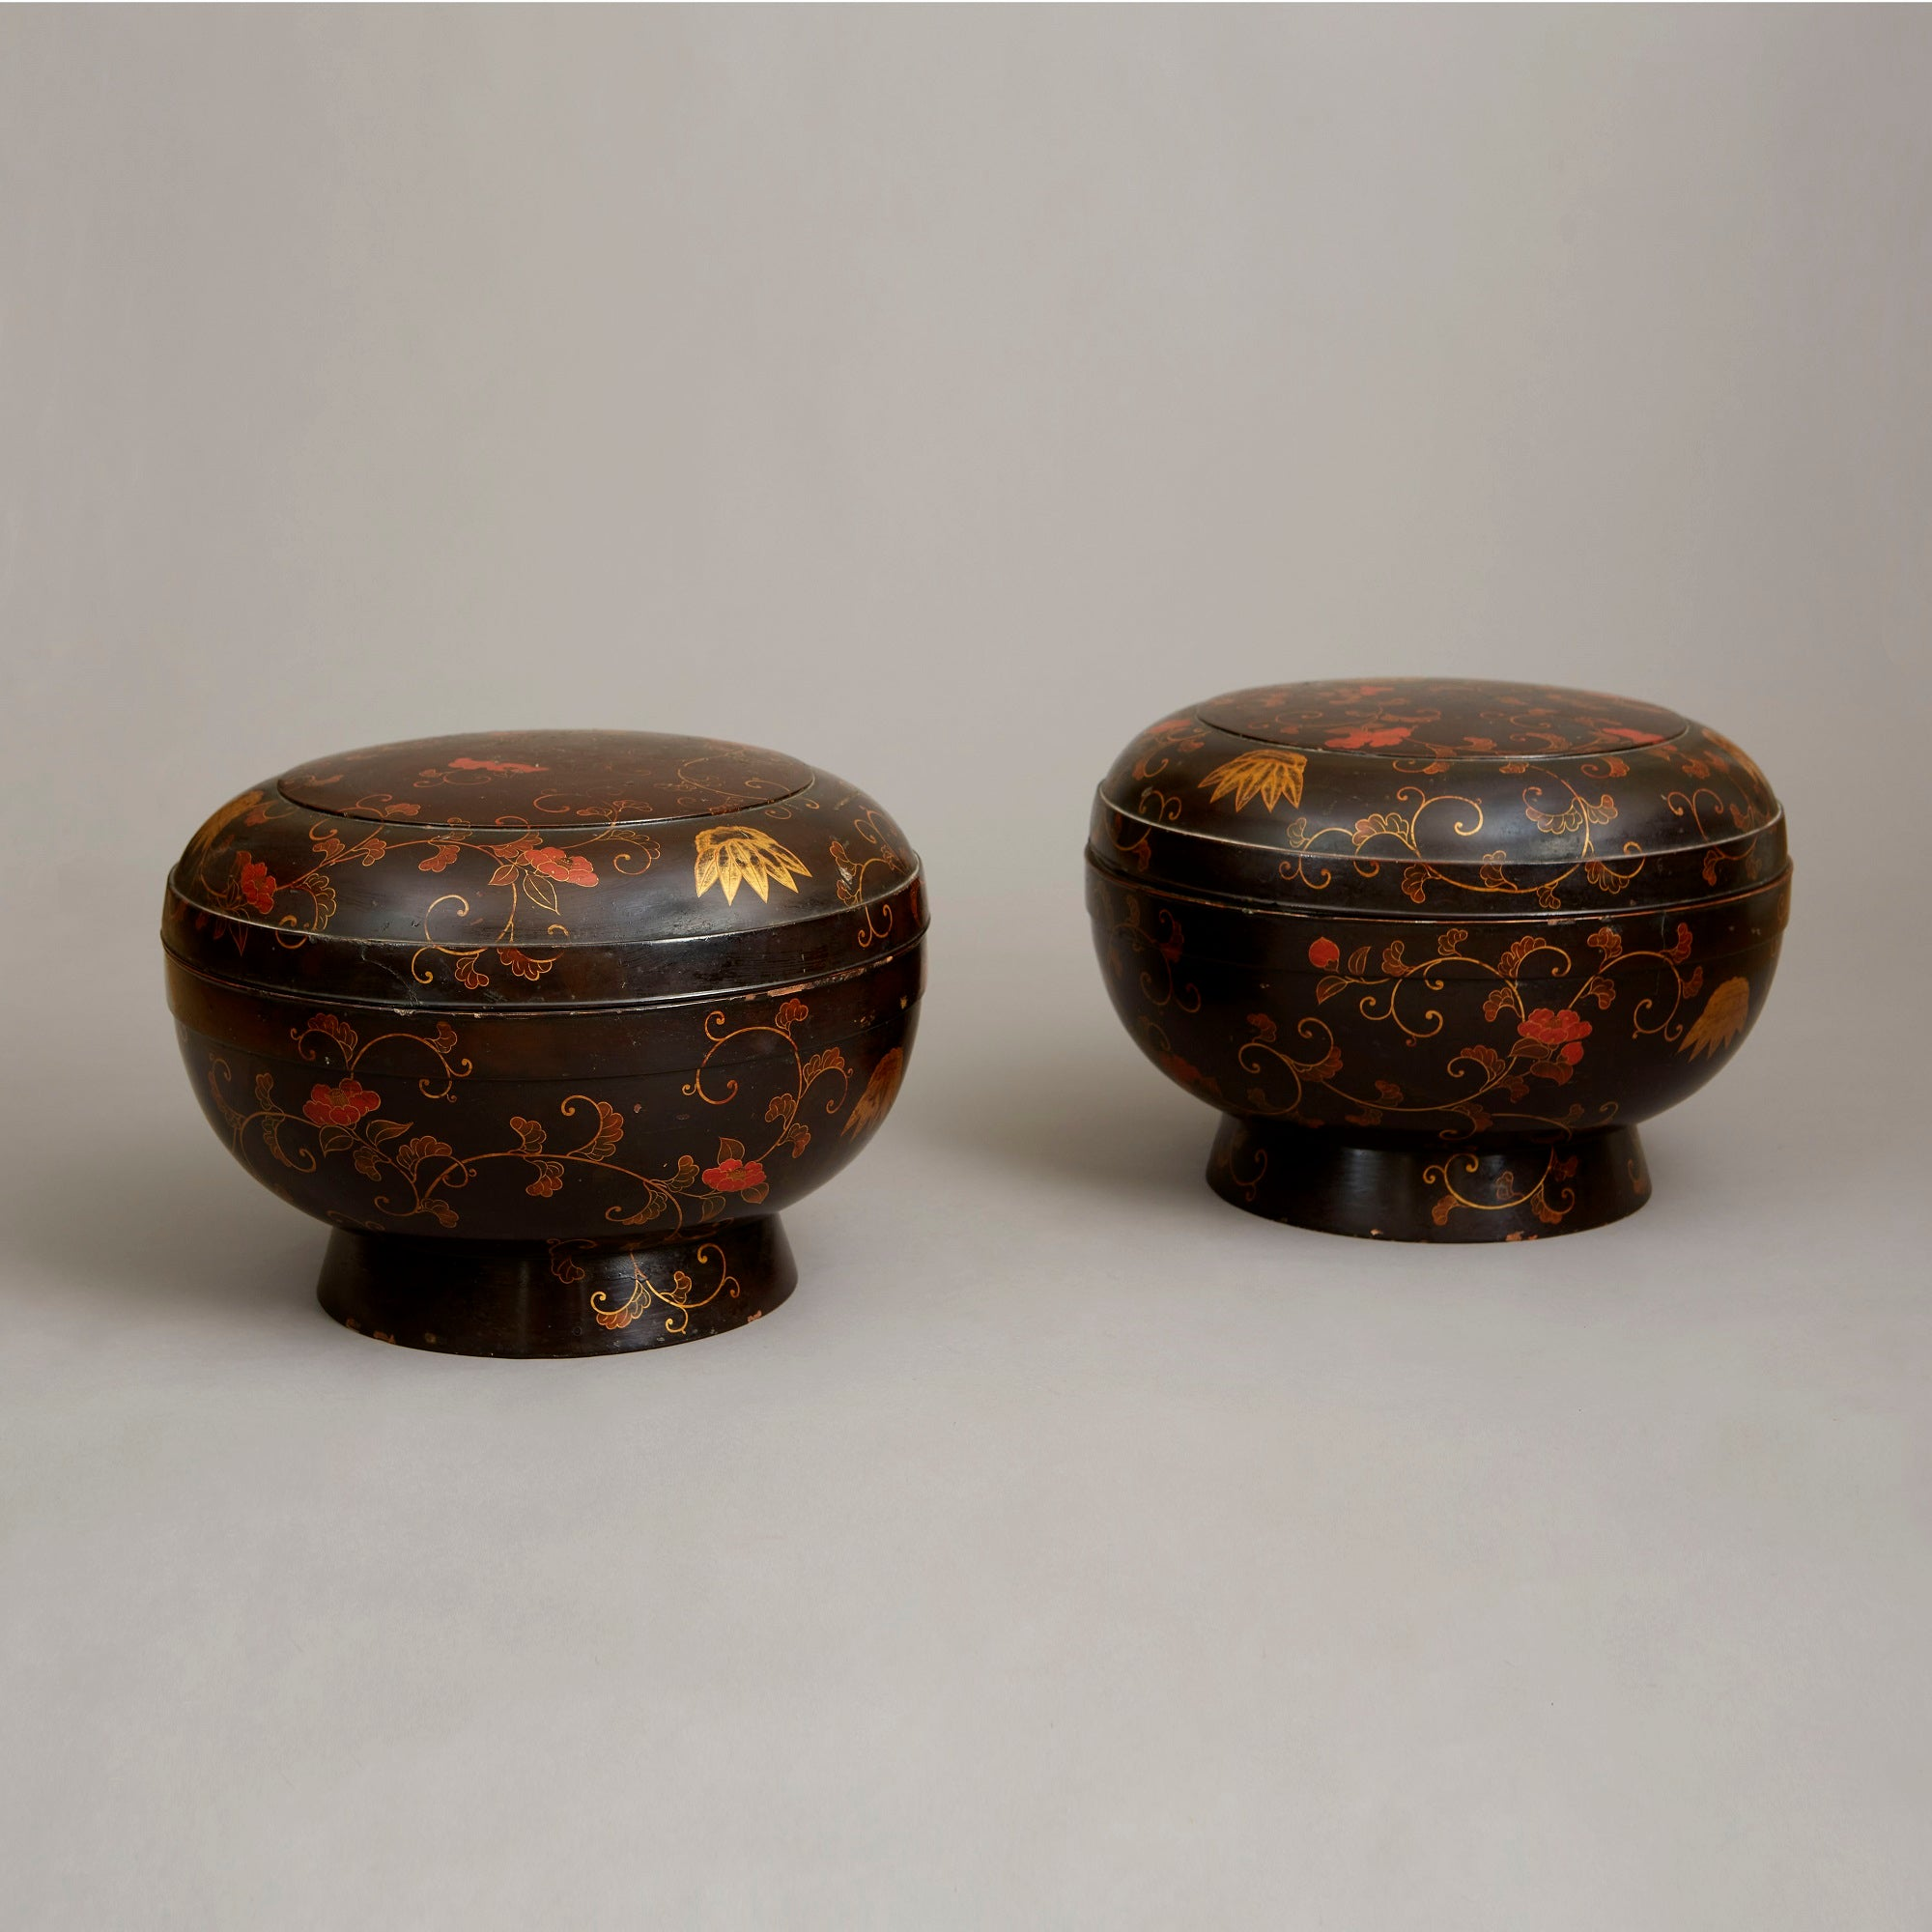 Pair of Large Circular Lacquer Boxes